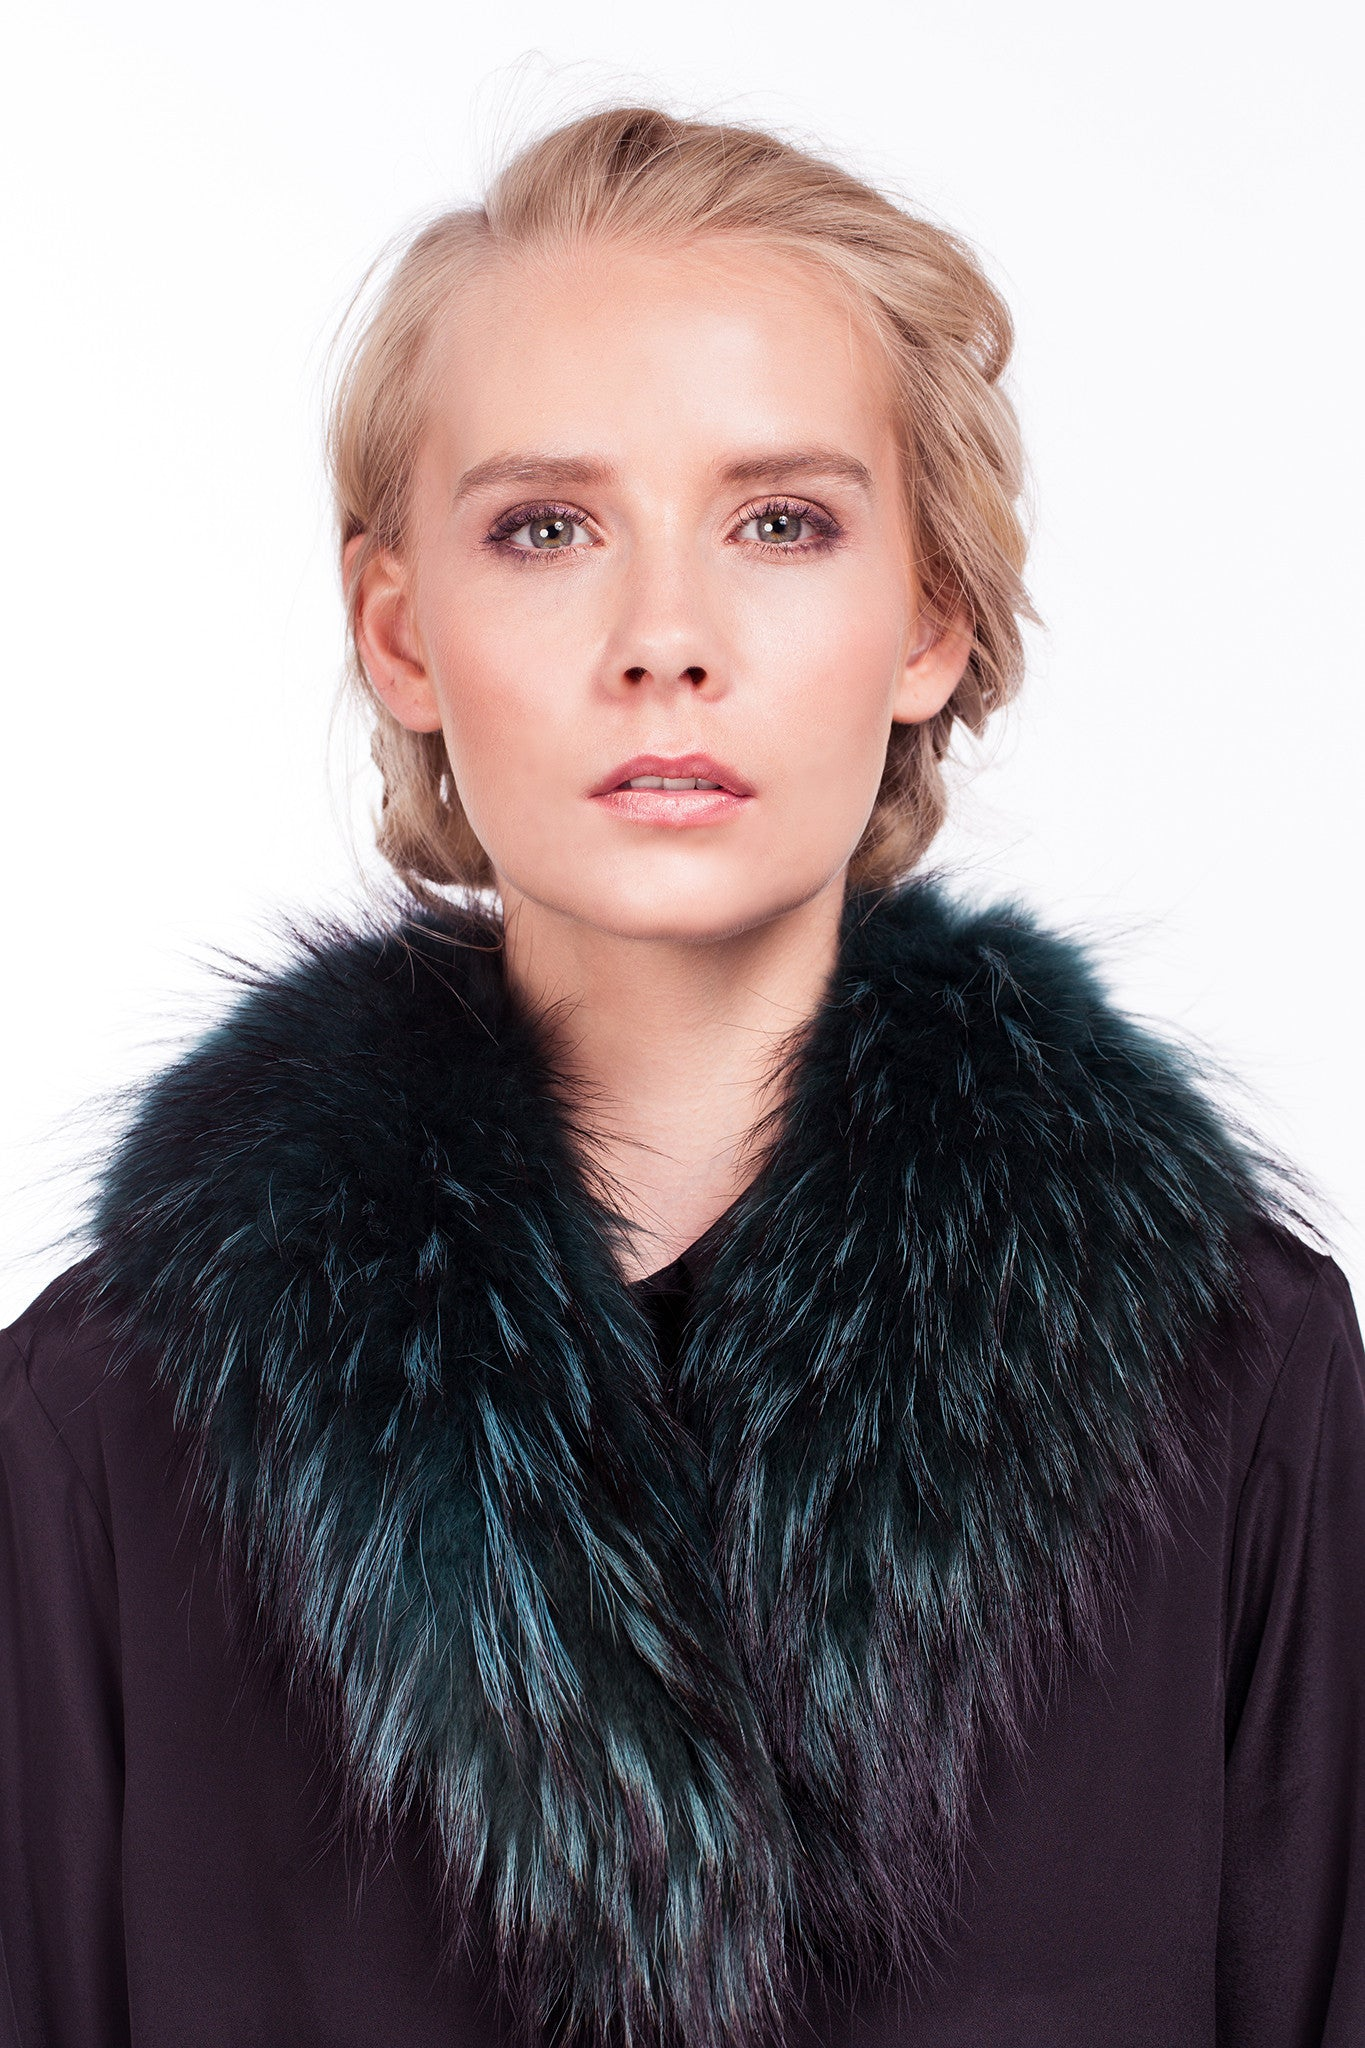 x Short Croombe Collar in Fir - The Soho Furrier